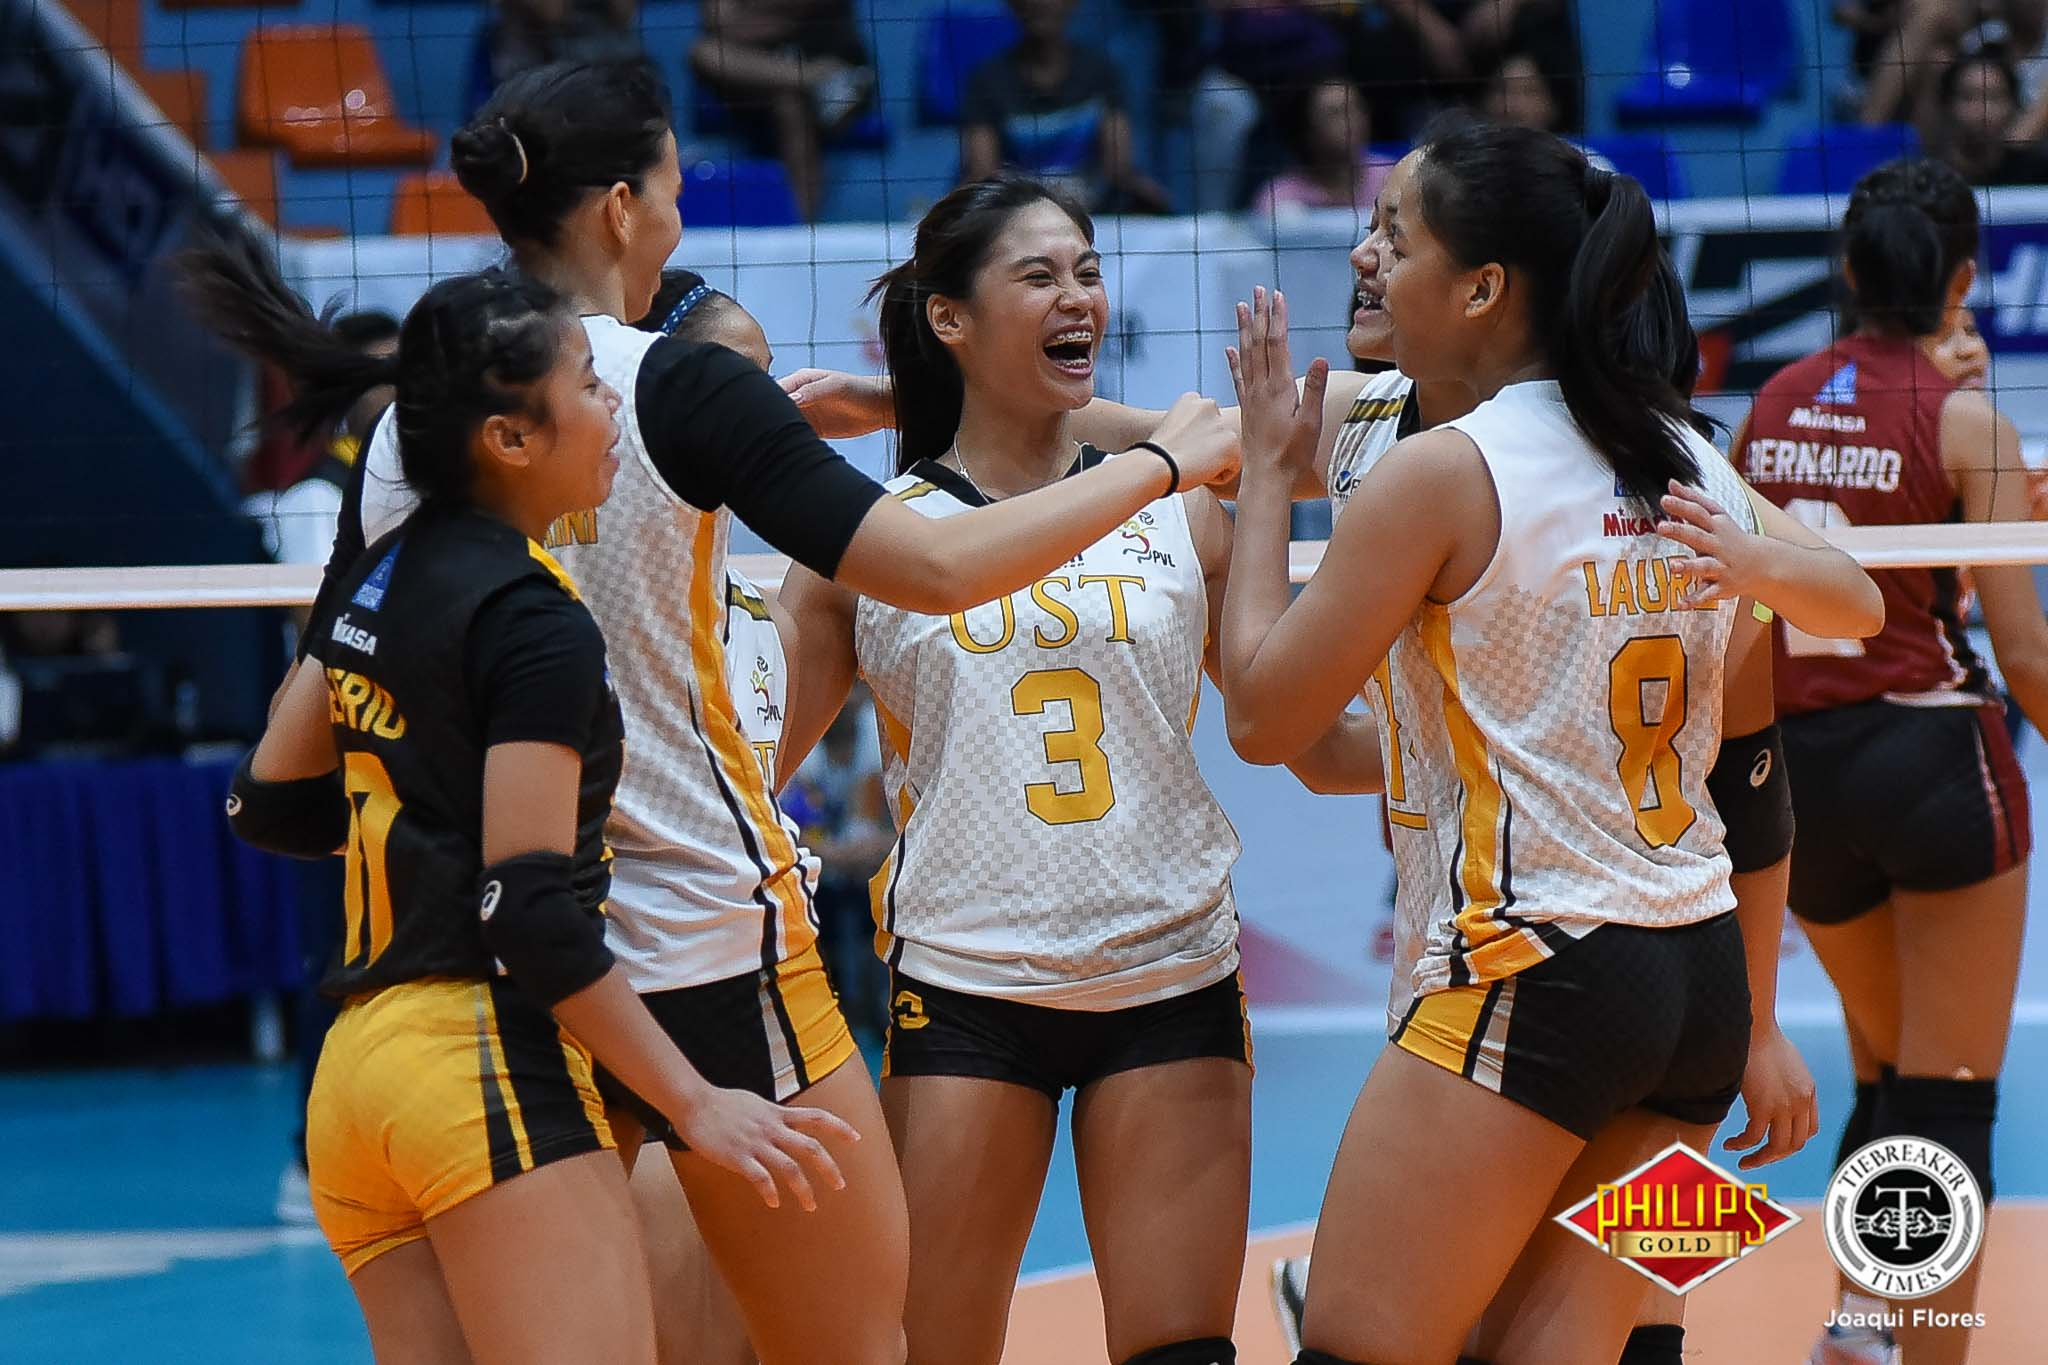 Tiebreaker Times UST claims first semis seat after gritty Saint Benilde encounter CSB News PVL UST Volleyball  Ysabel Jimenez UST Women's Volleyball Saint Benilde Women's Volleyball Milena Alessandrini Marites Pablo Klarisa Abriam Jerry Yee Janel Delerio Ian Fernandez Alina Bicar 2018 PVL Women's Collegiate Conference 2018 PVL Season